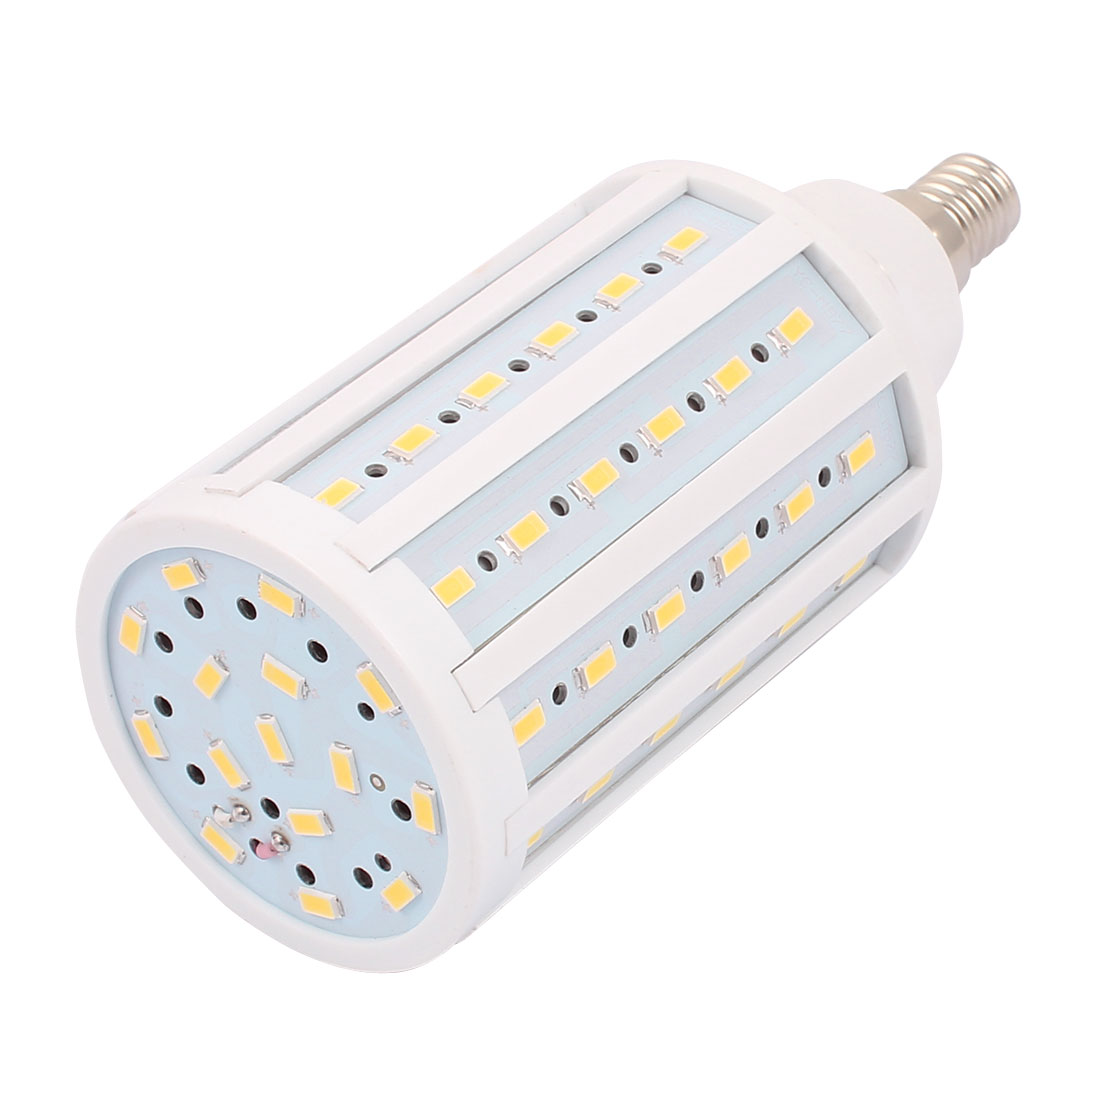 AC85-265V 20W 5730SMD LED E14 Energy Saving Corn Light Bulb Lamp Warm White